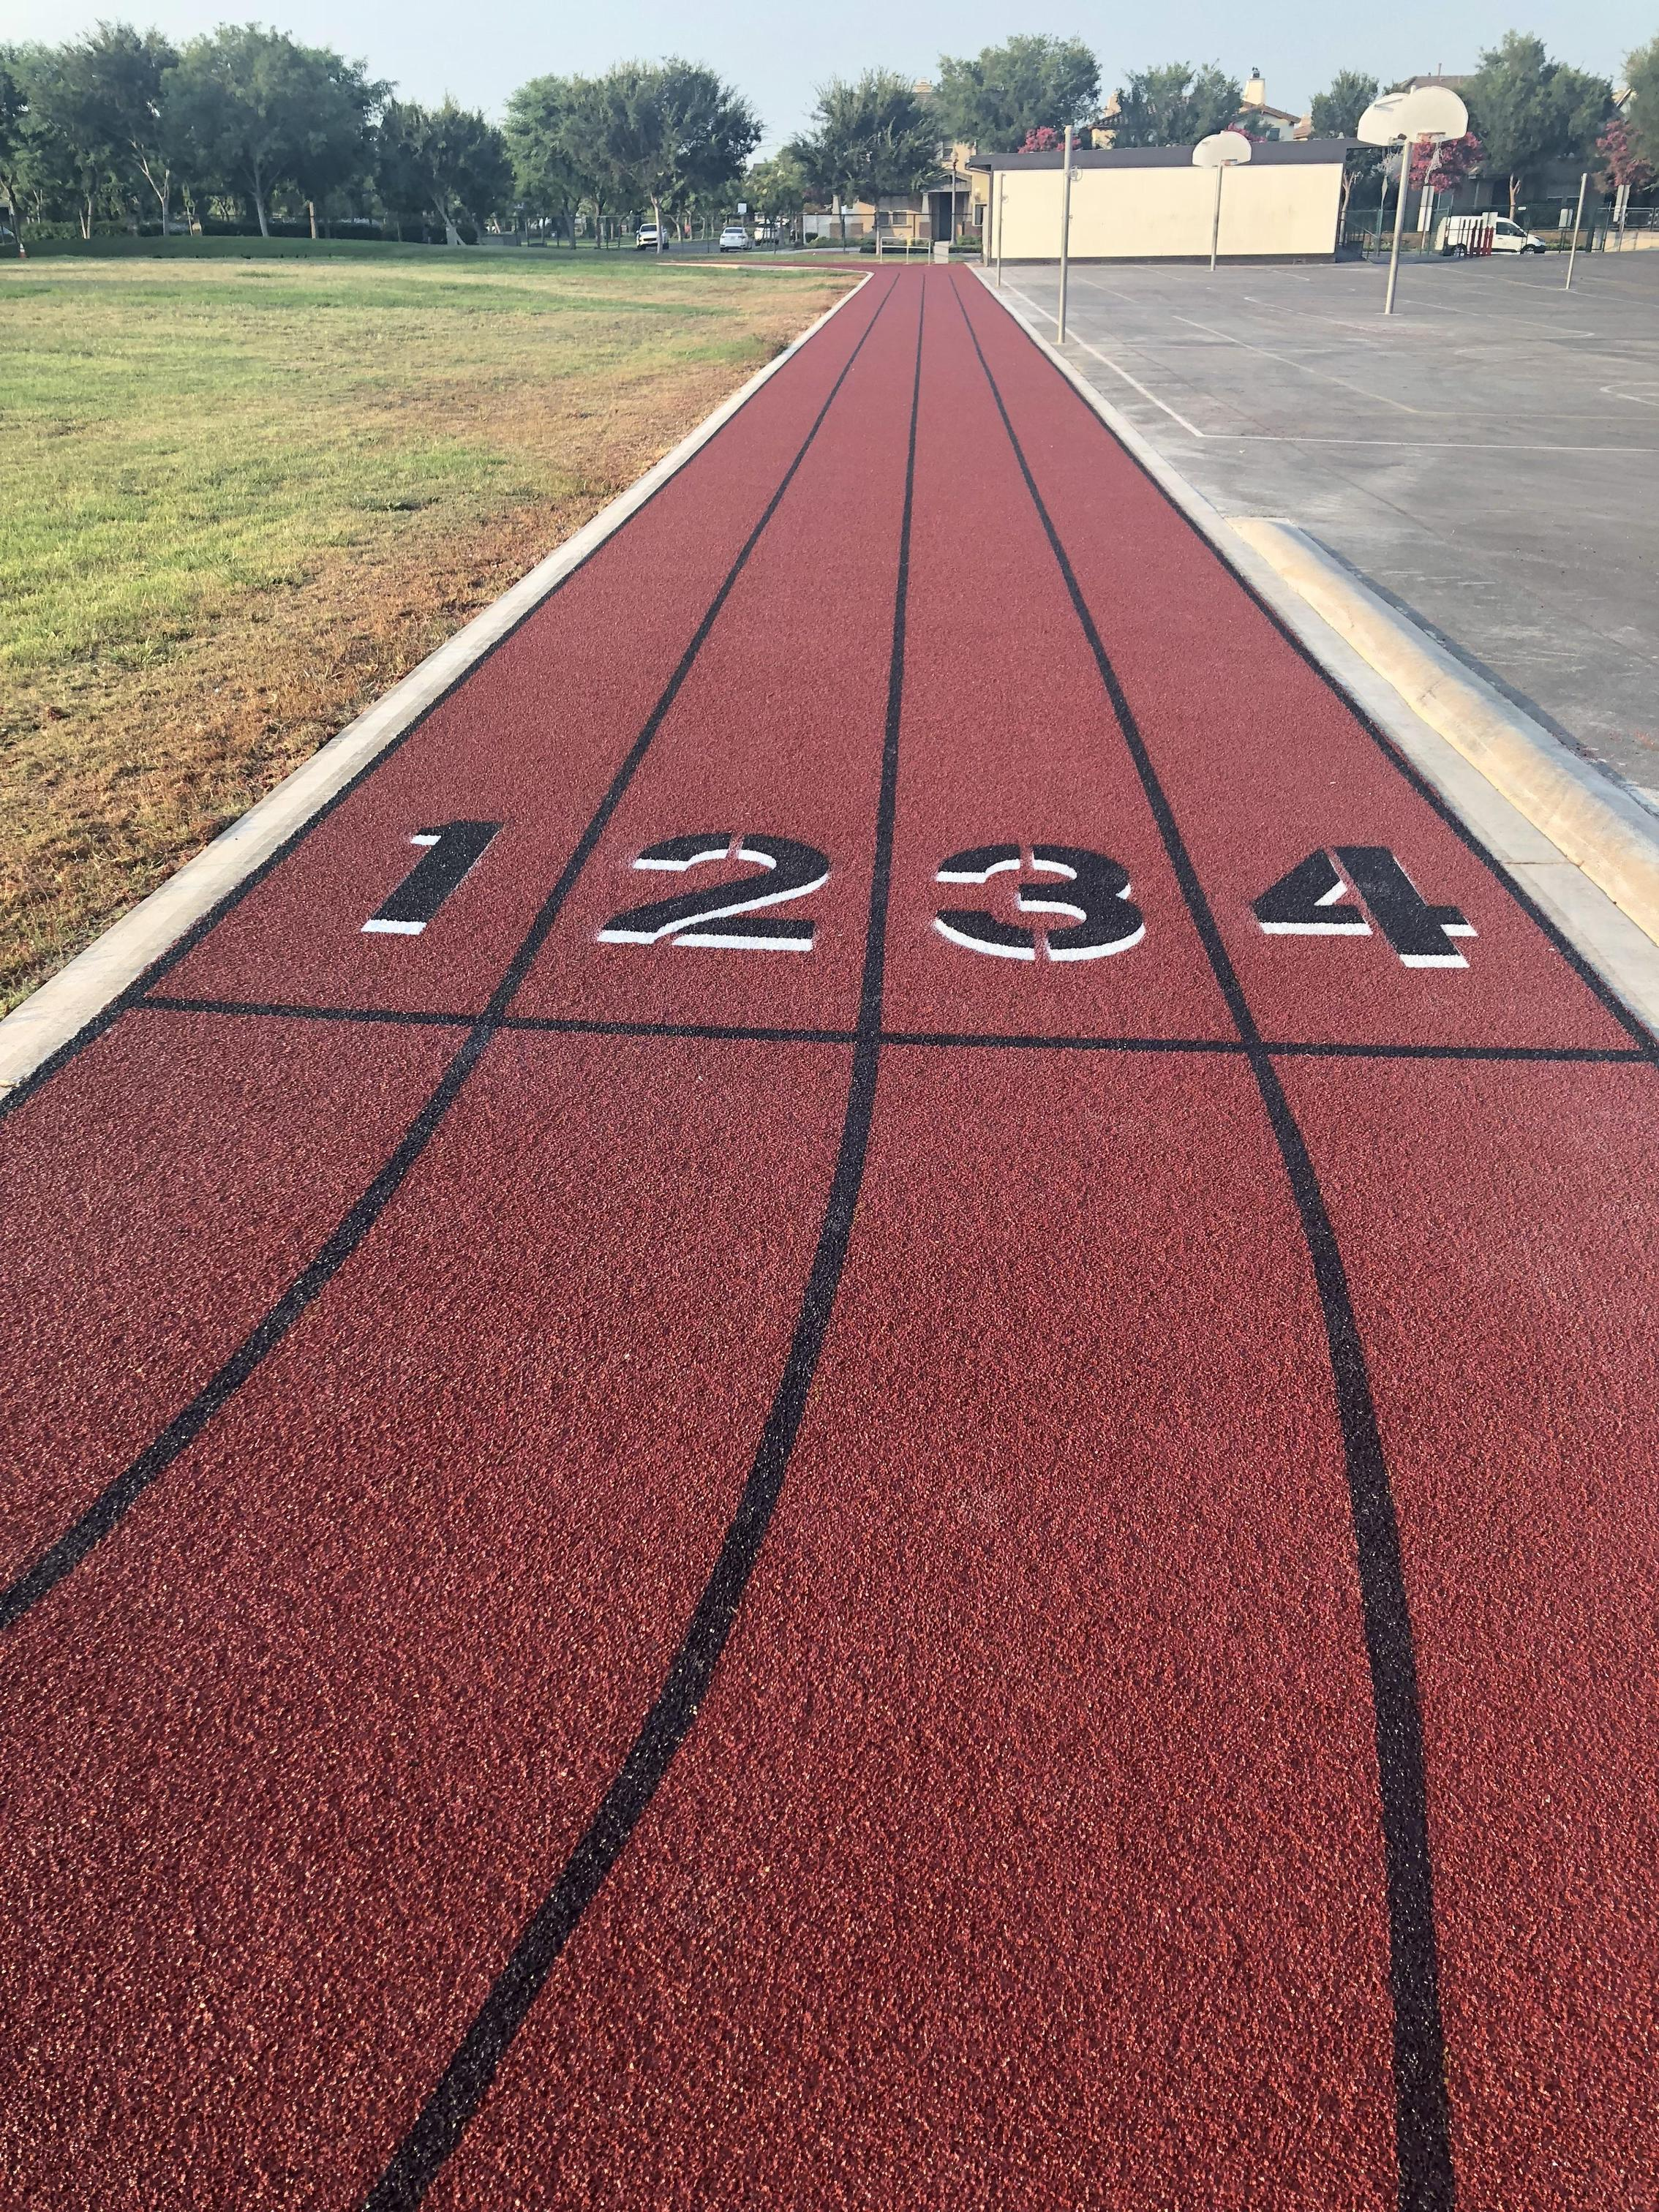 The new track surface is in at Fisler...time to get some exercise!